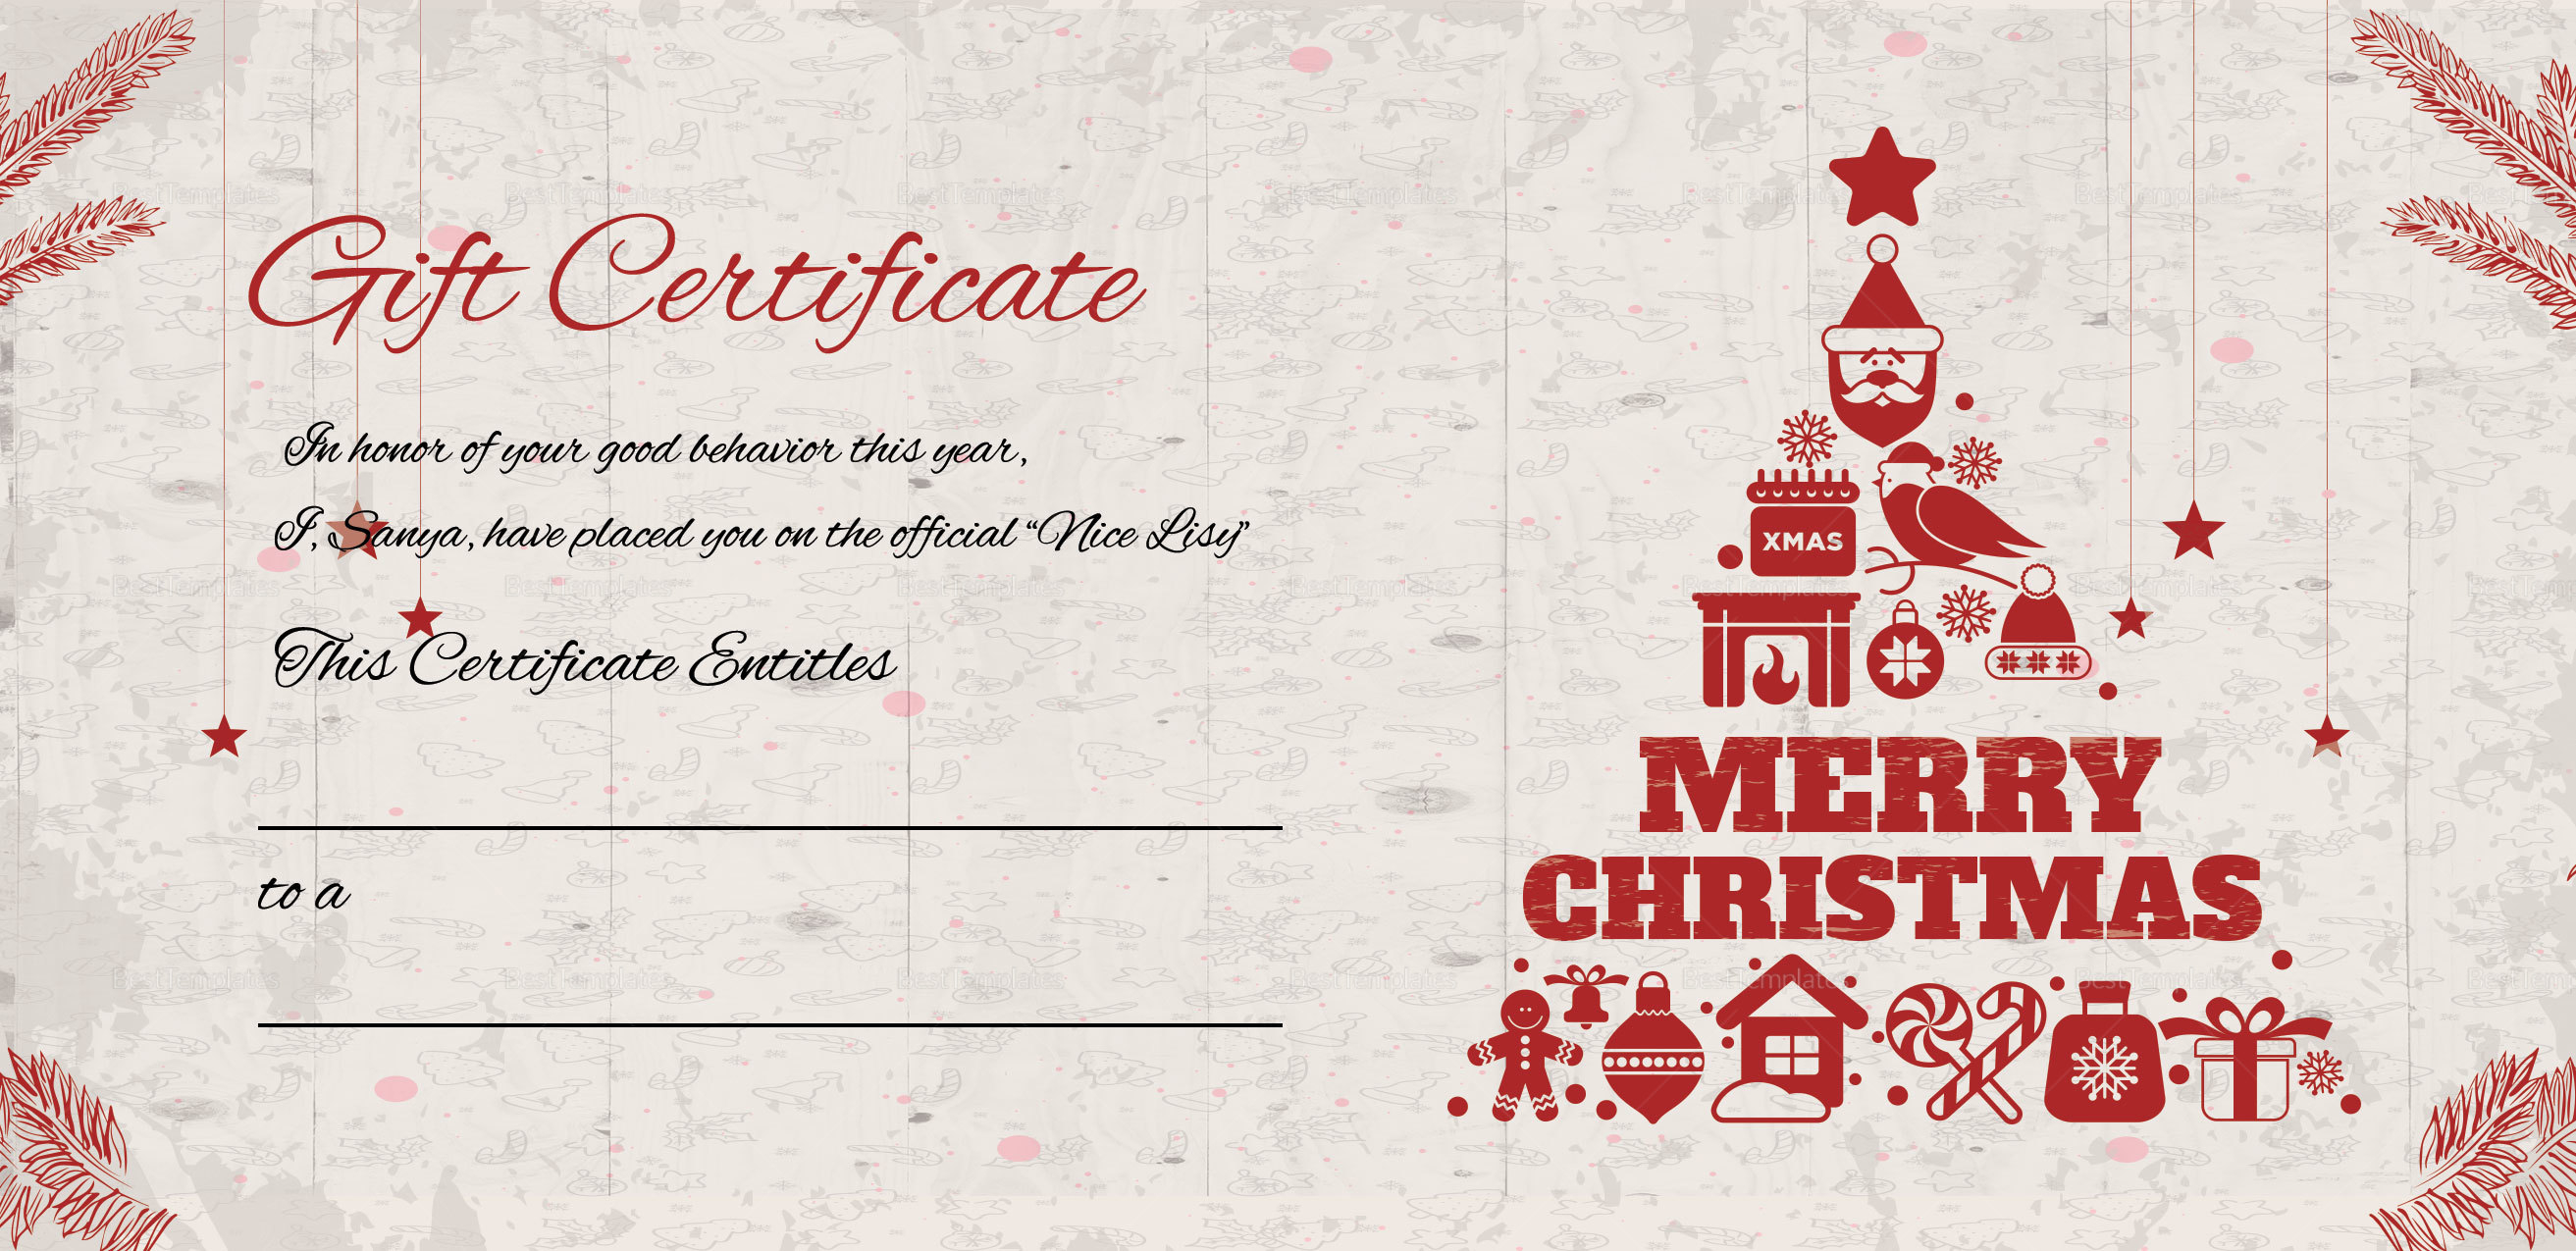 Merry Christmas Gift Certificate Template in Adobe Photoshop